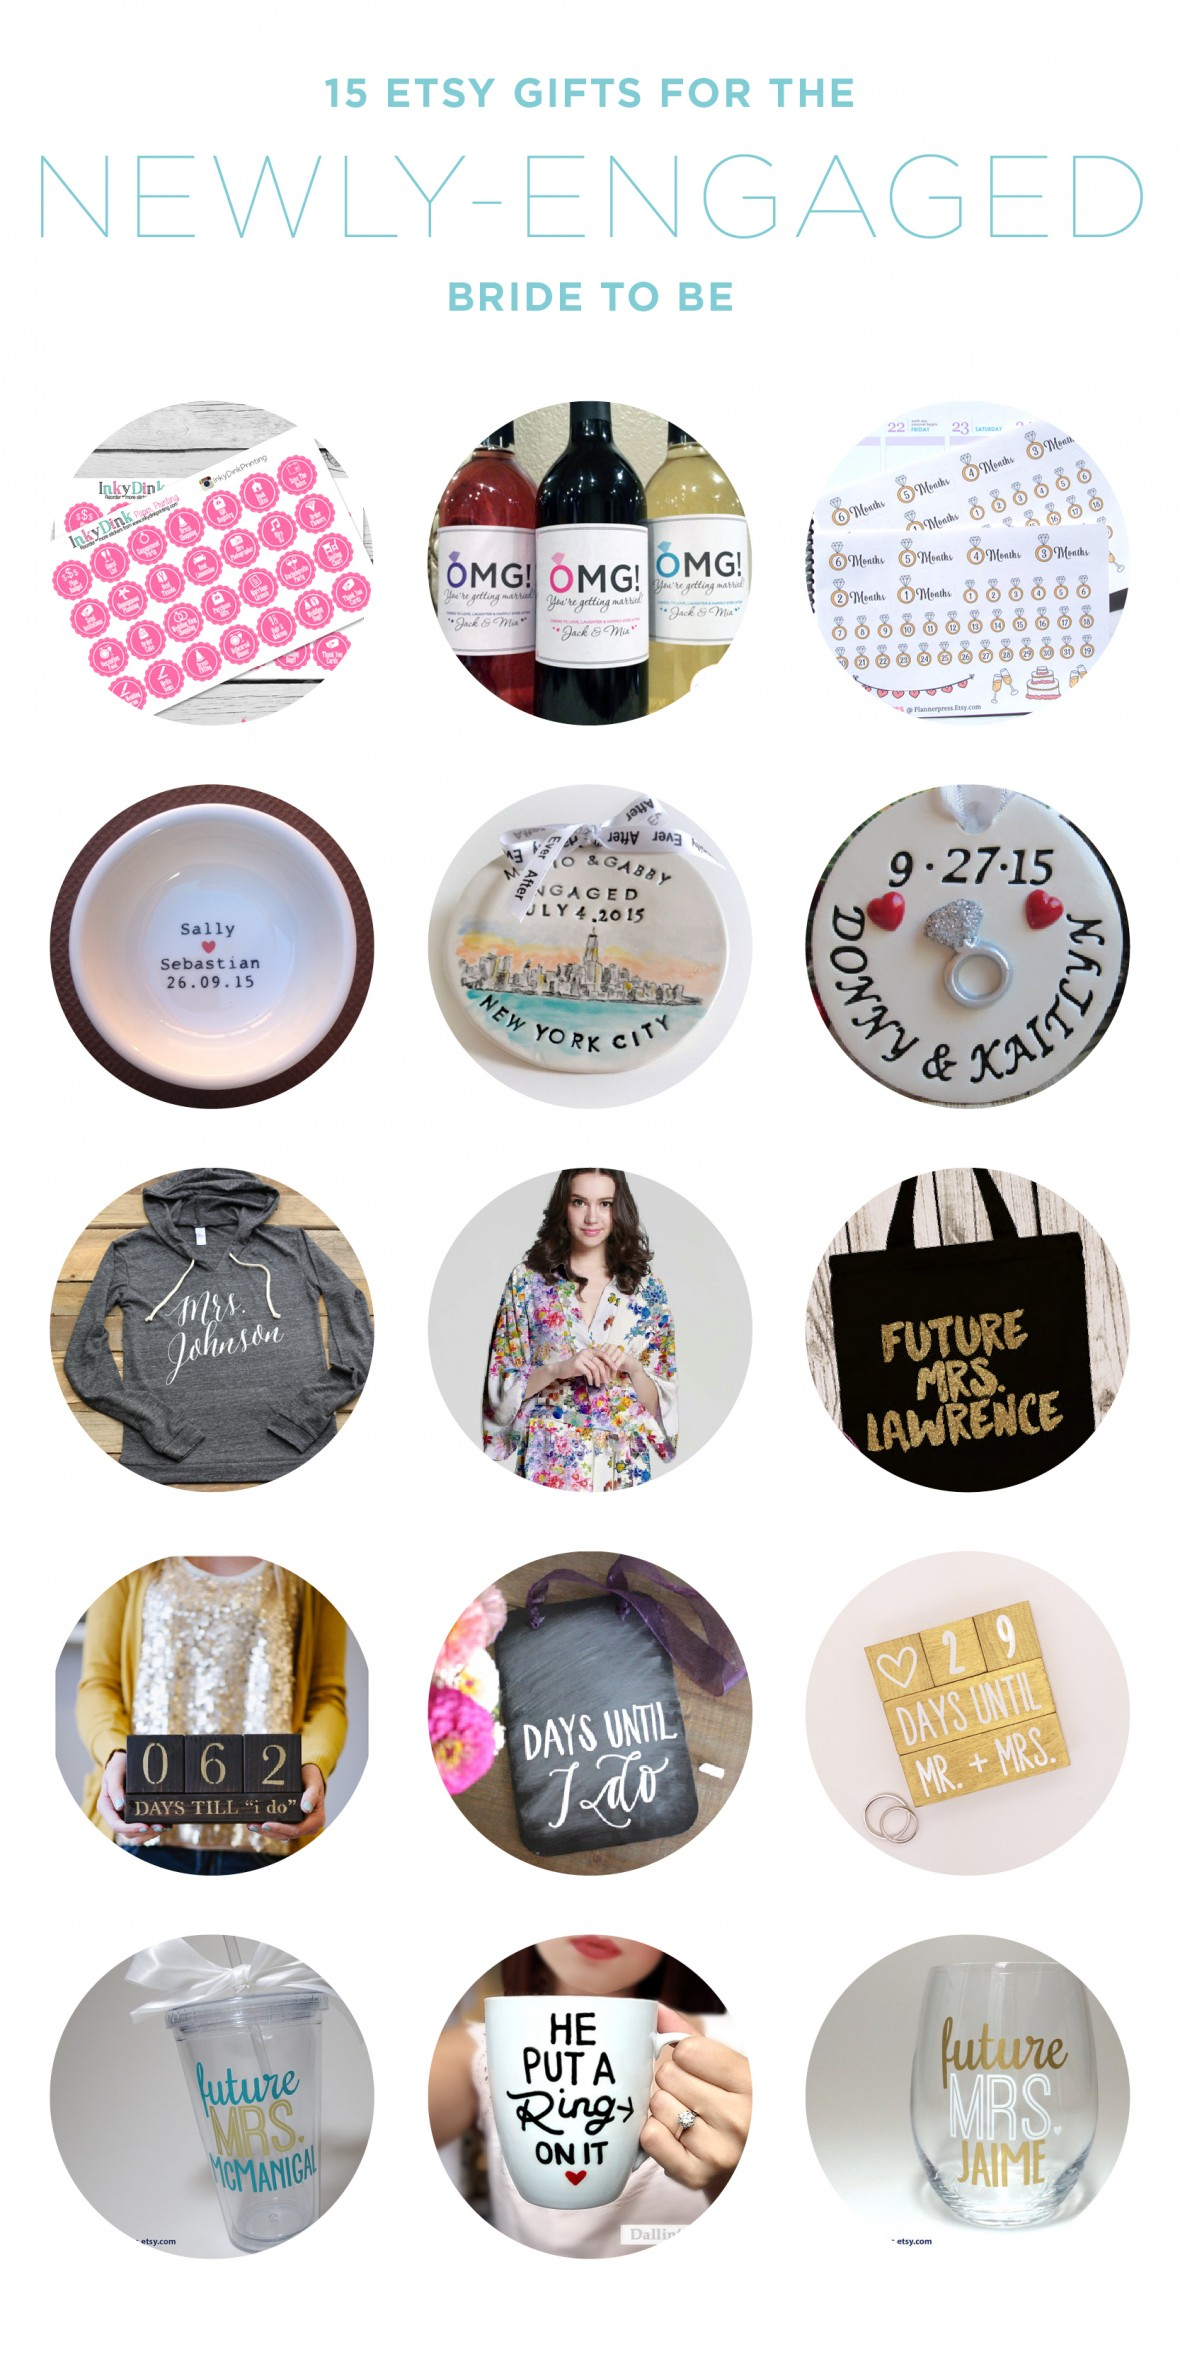 15 Etsy Gifts for the Newly Engaged Bride to Be